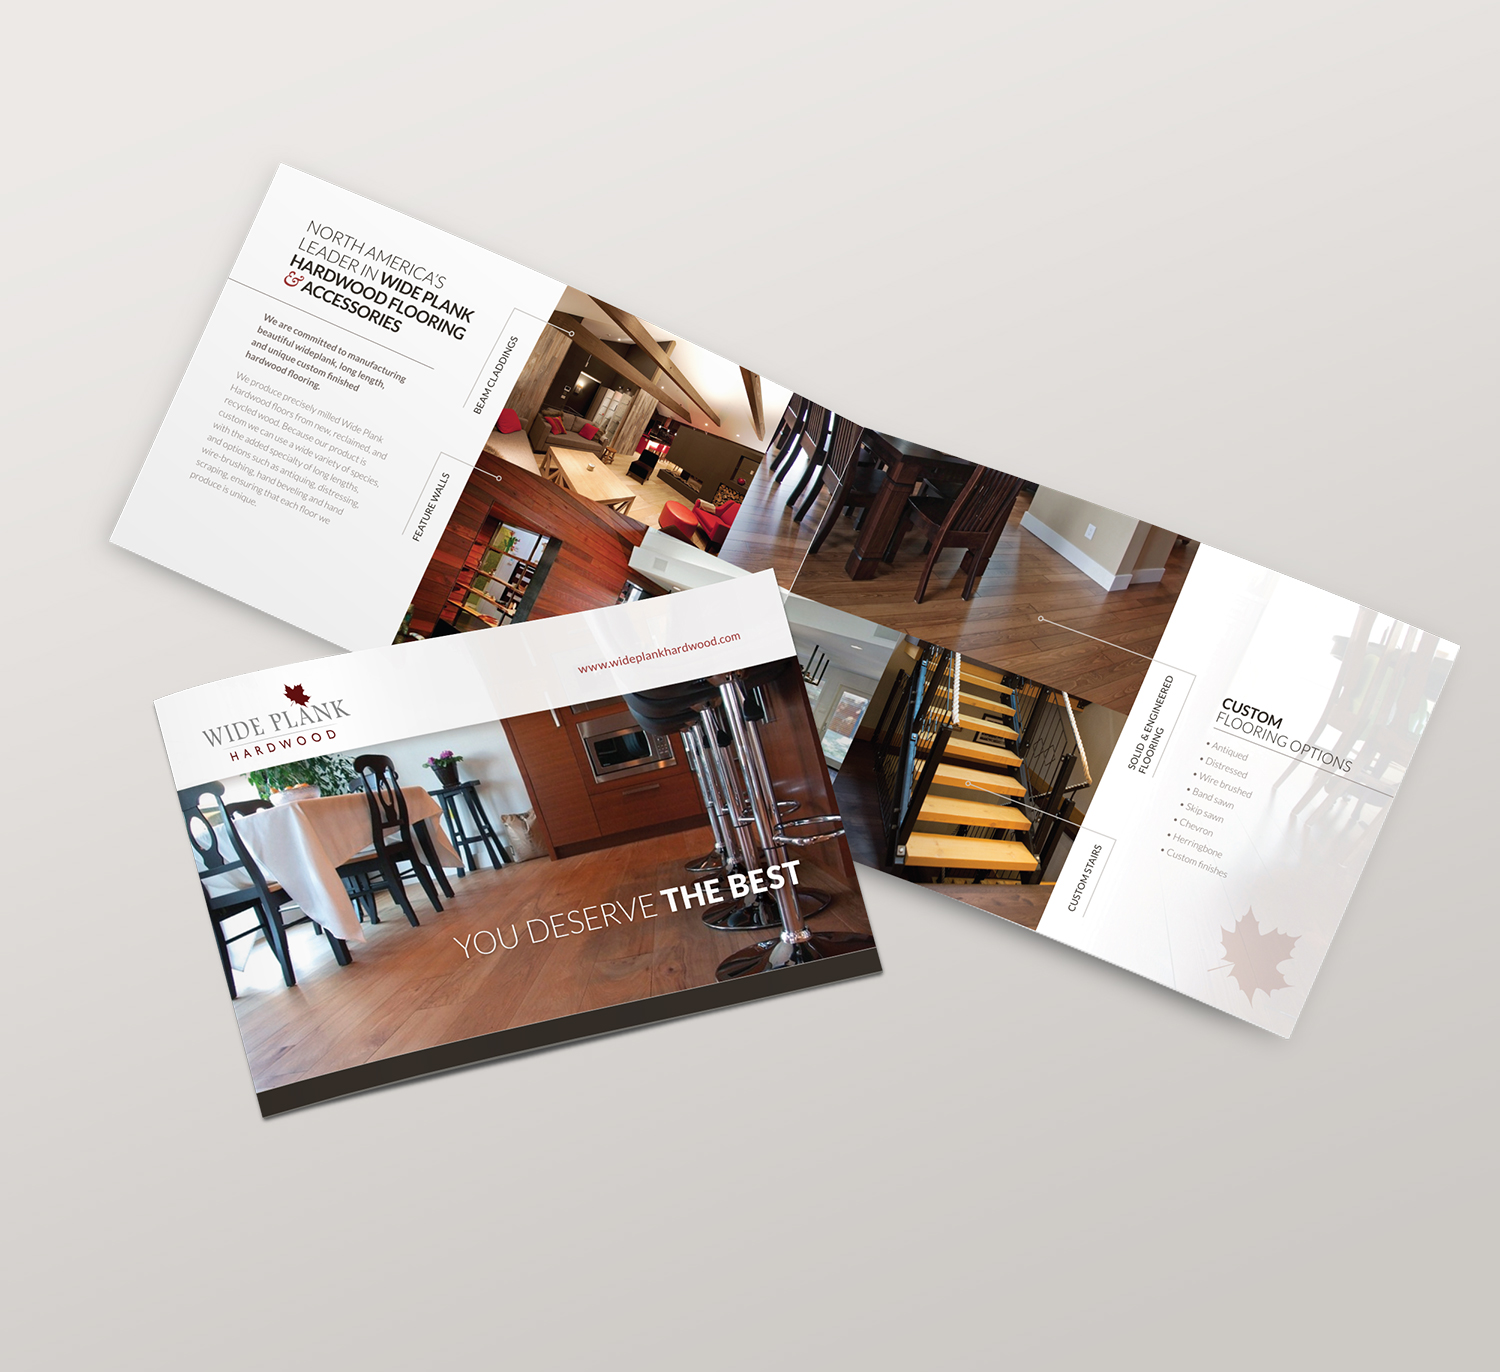 <strong>Wideplank Hardwood</strong> product booklet under Circle Graphics & Design